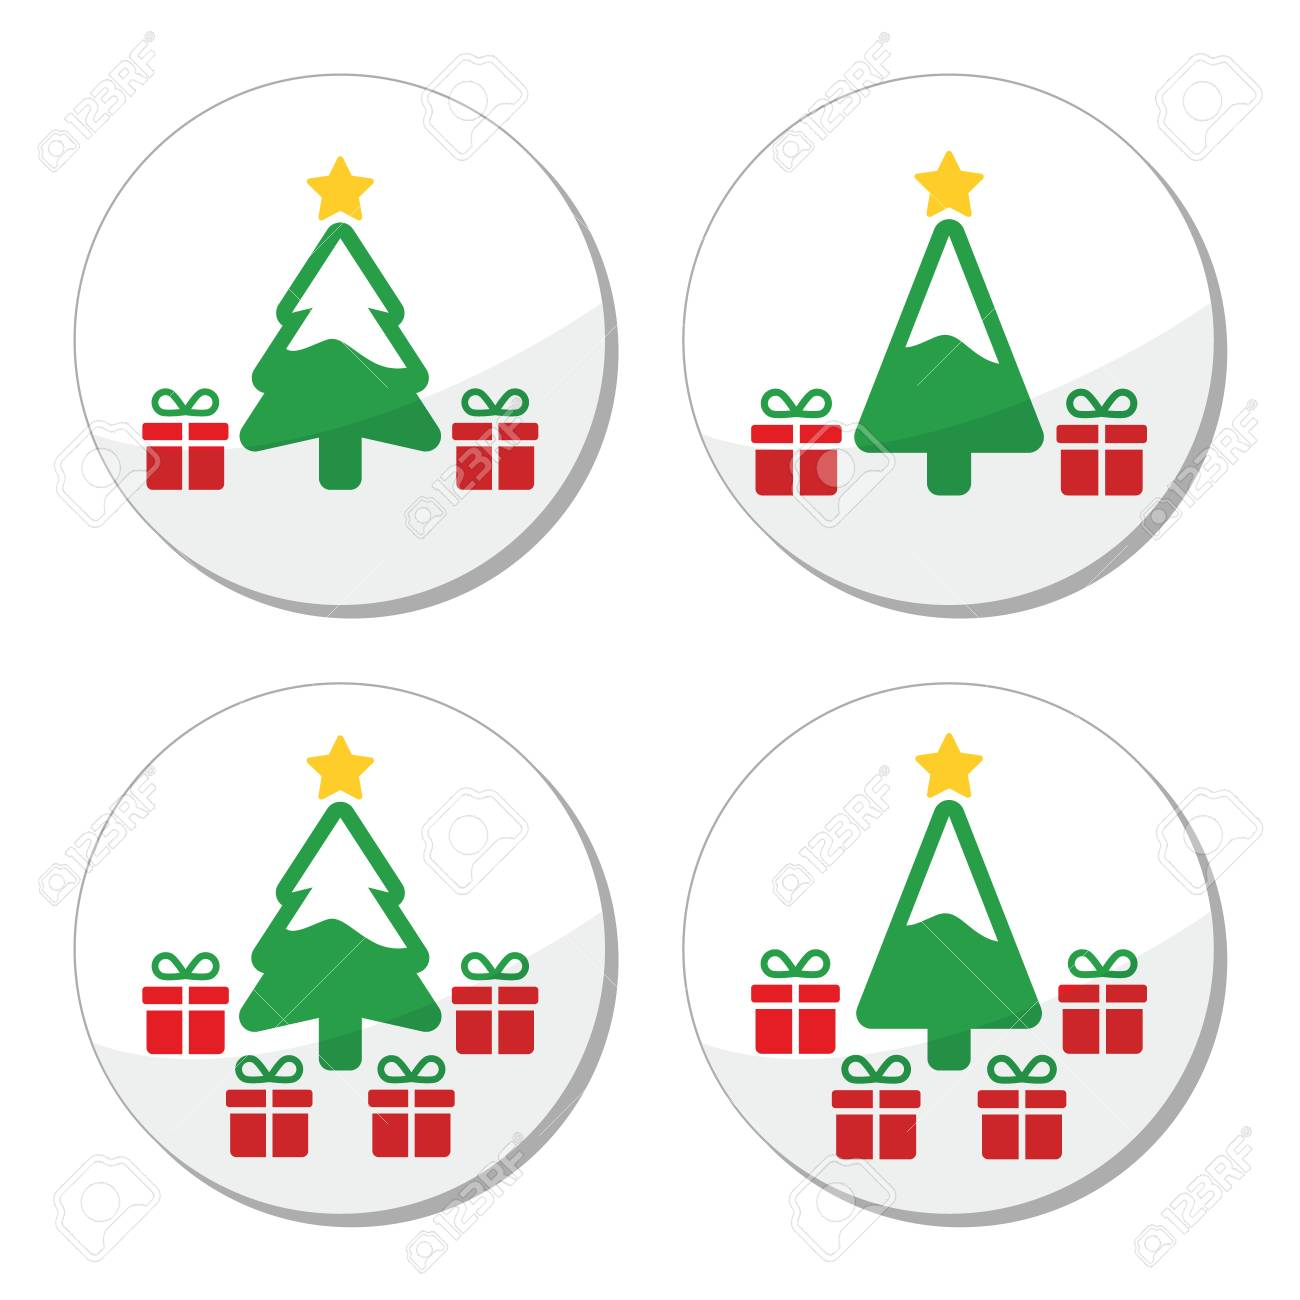 Christmas tree with presents icons set Stock Vector - 24026224